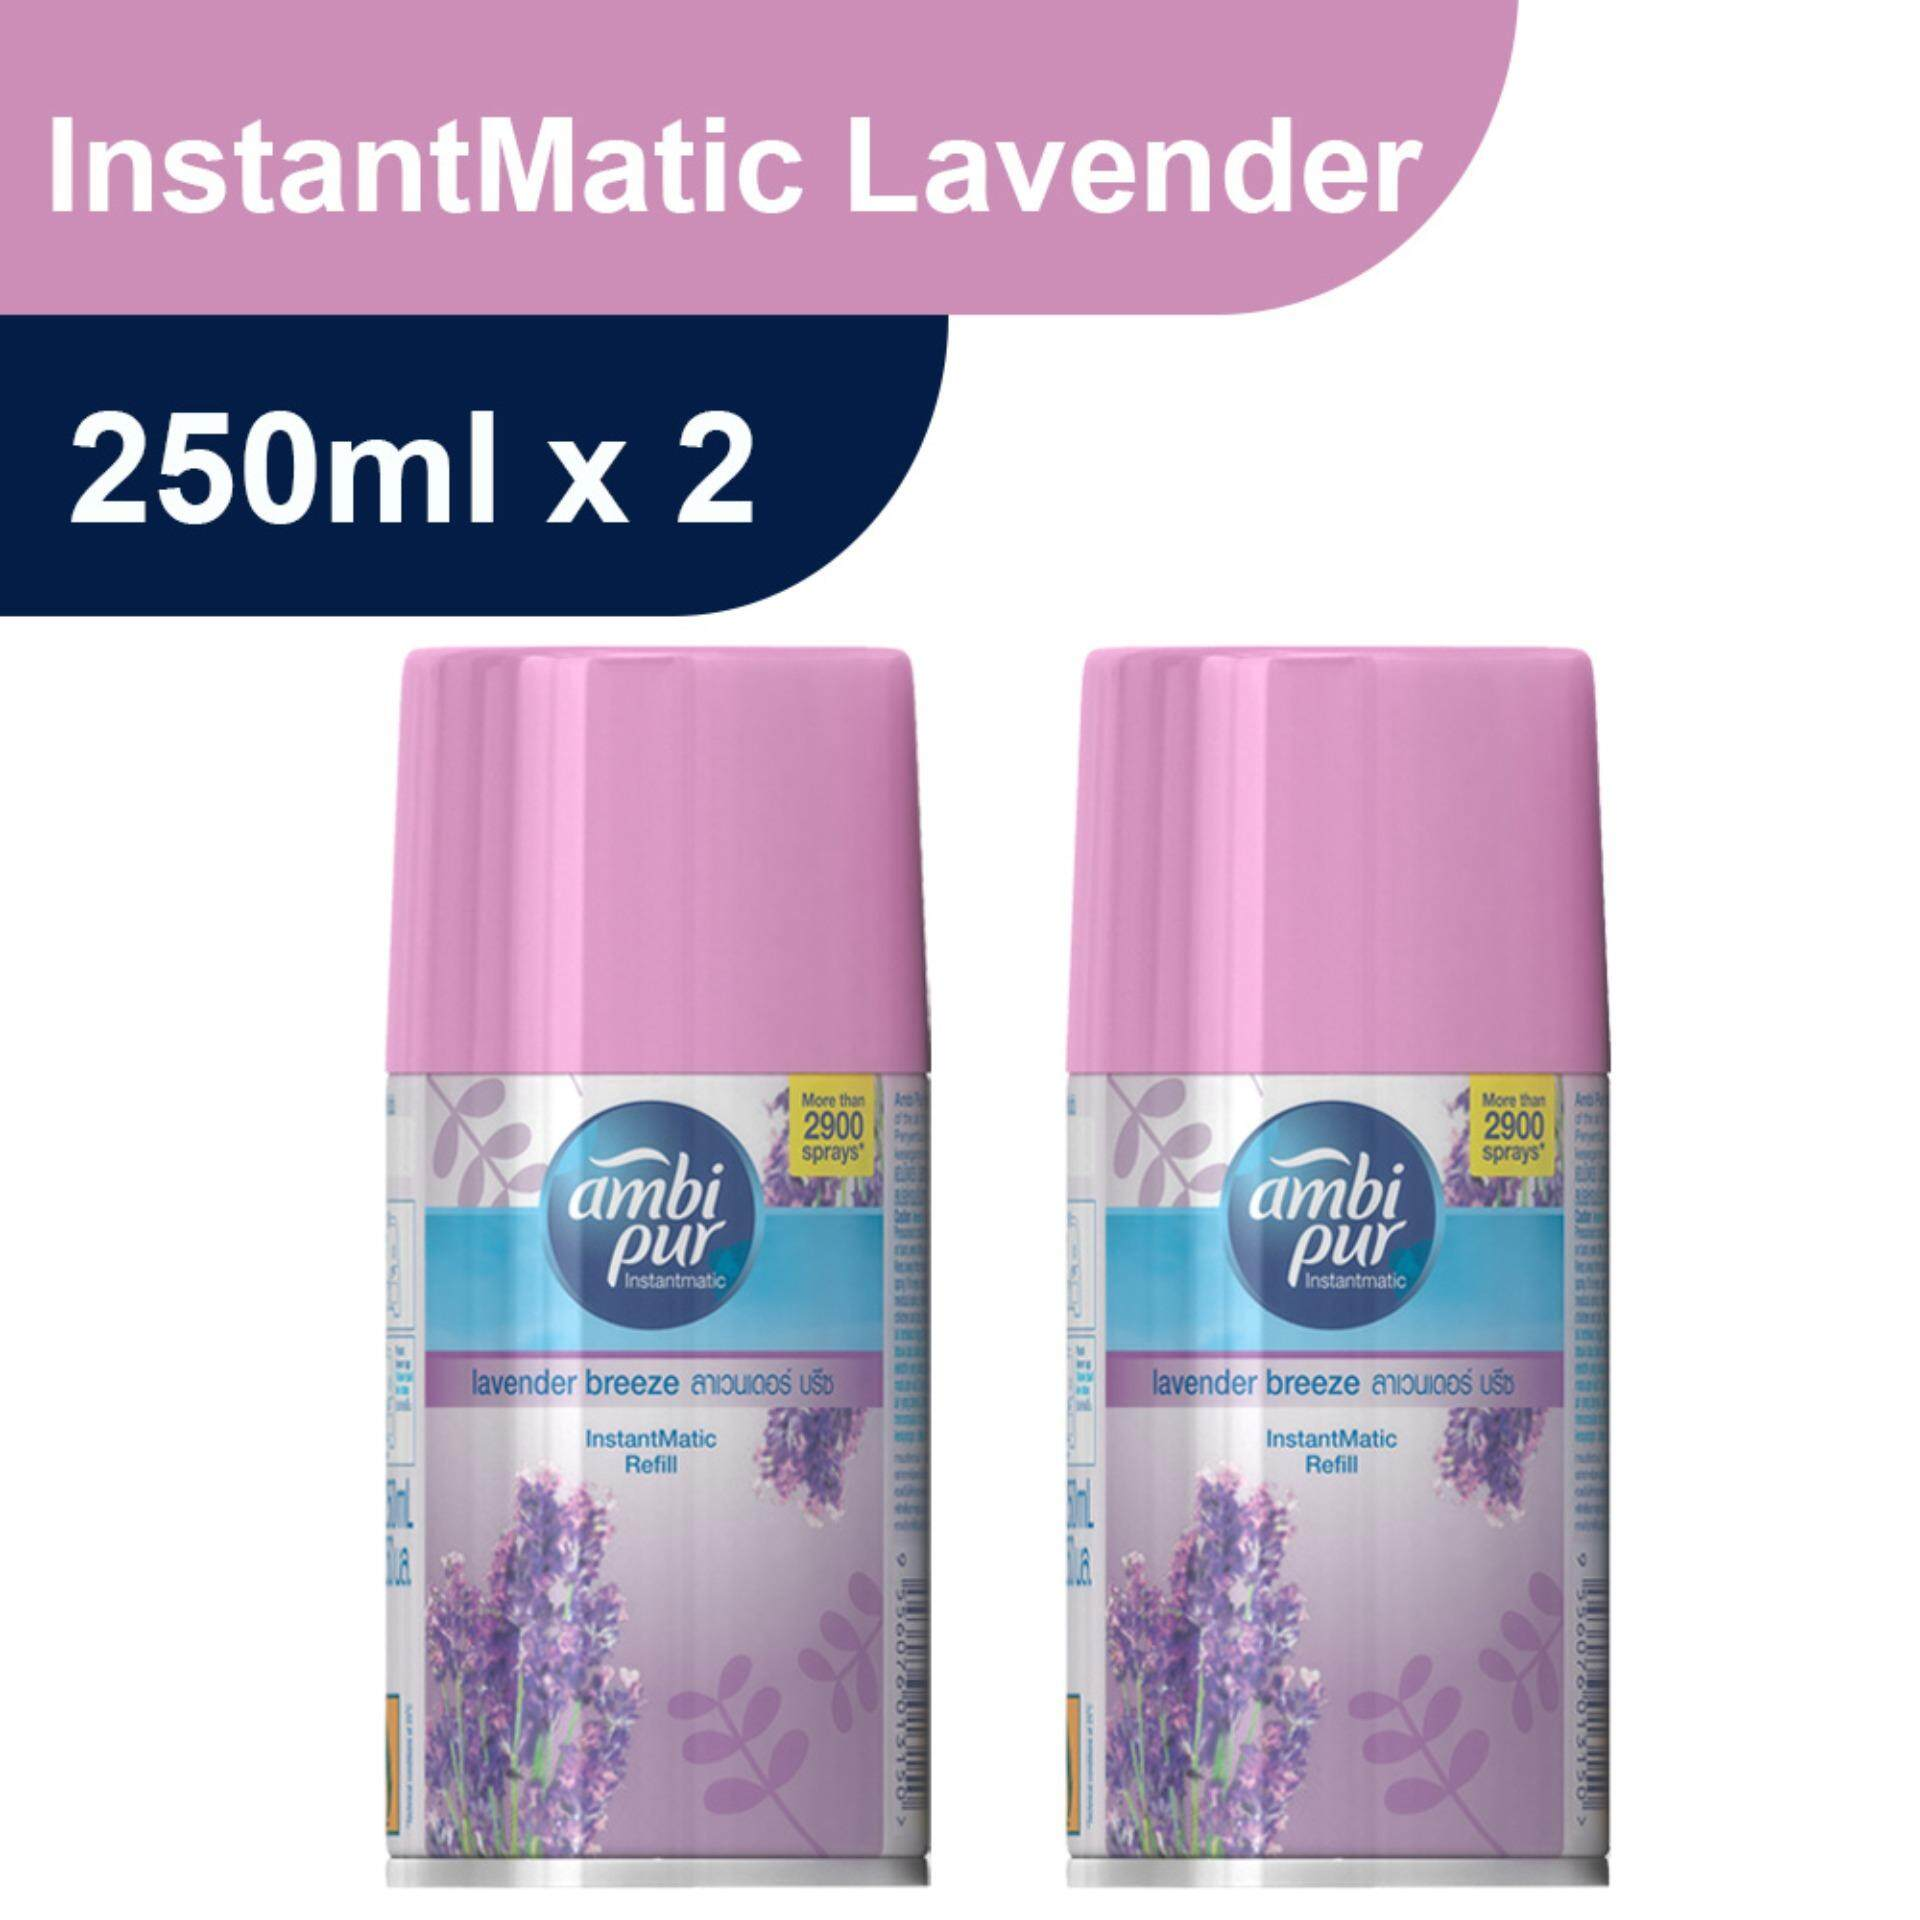 Ambi Pur InstantMatic Lavender Breeze Automatic Spray Refill 250ml Twin Pack